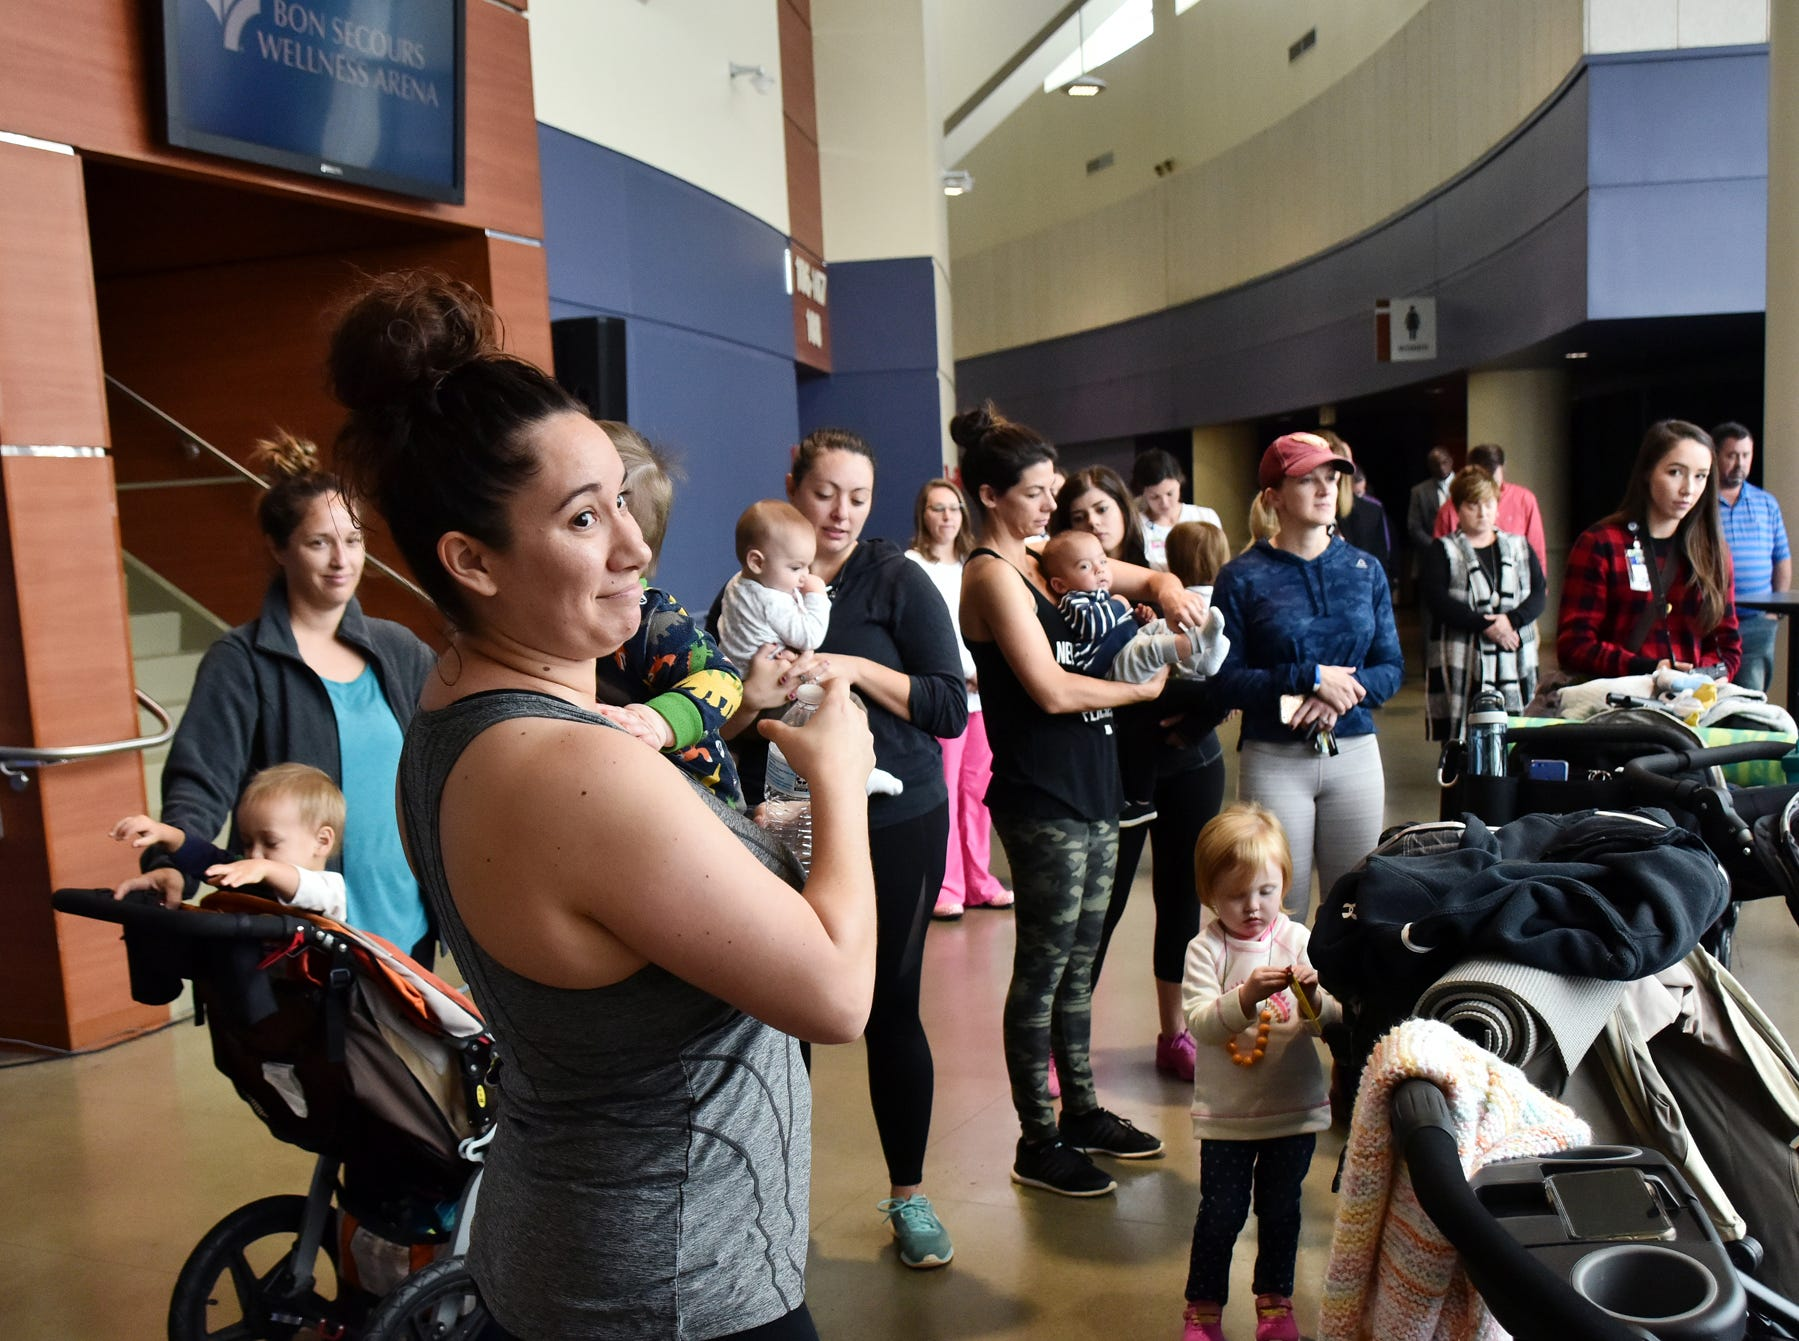 Members of the Strong Mamas fitness group attend a blessing ceremony for the  mothers nursing suite at the Bon Secours Wellness arena Tuesday morning, November 13, 2018.